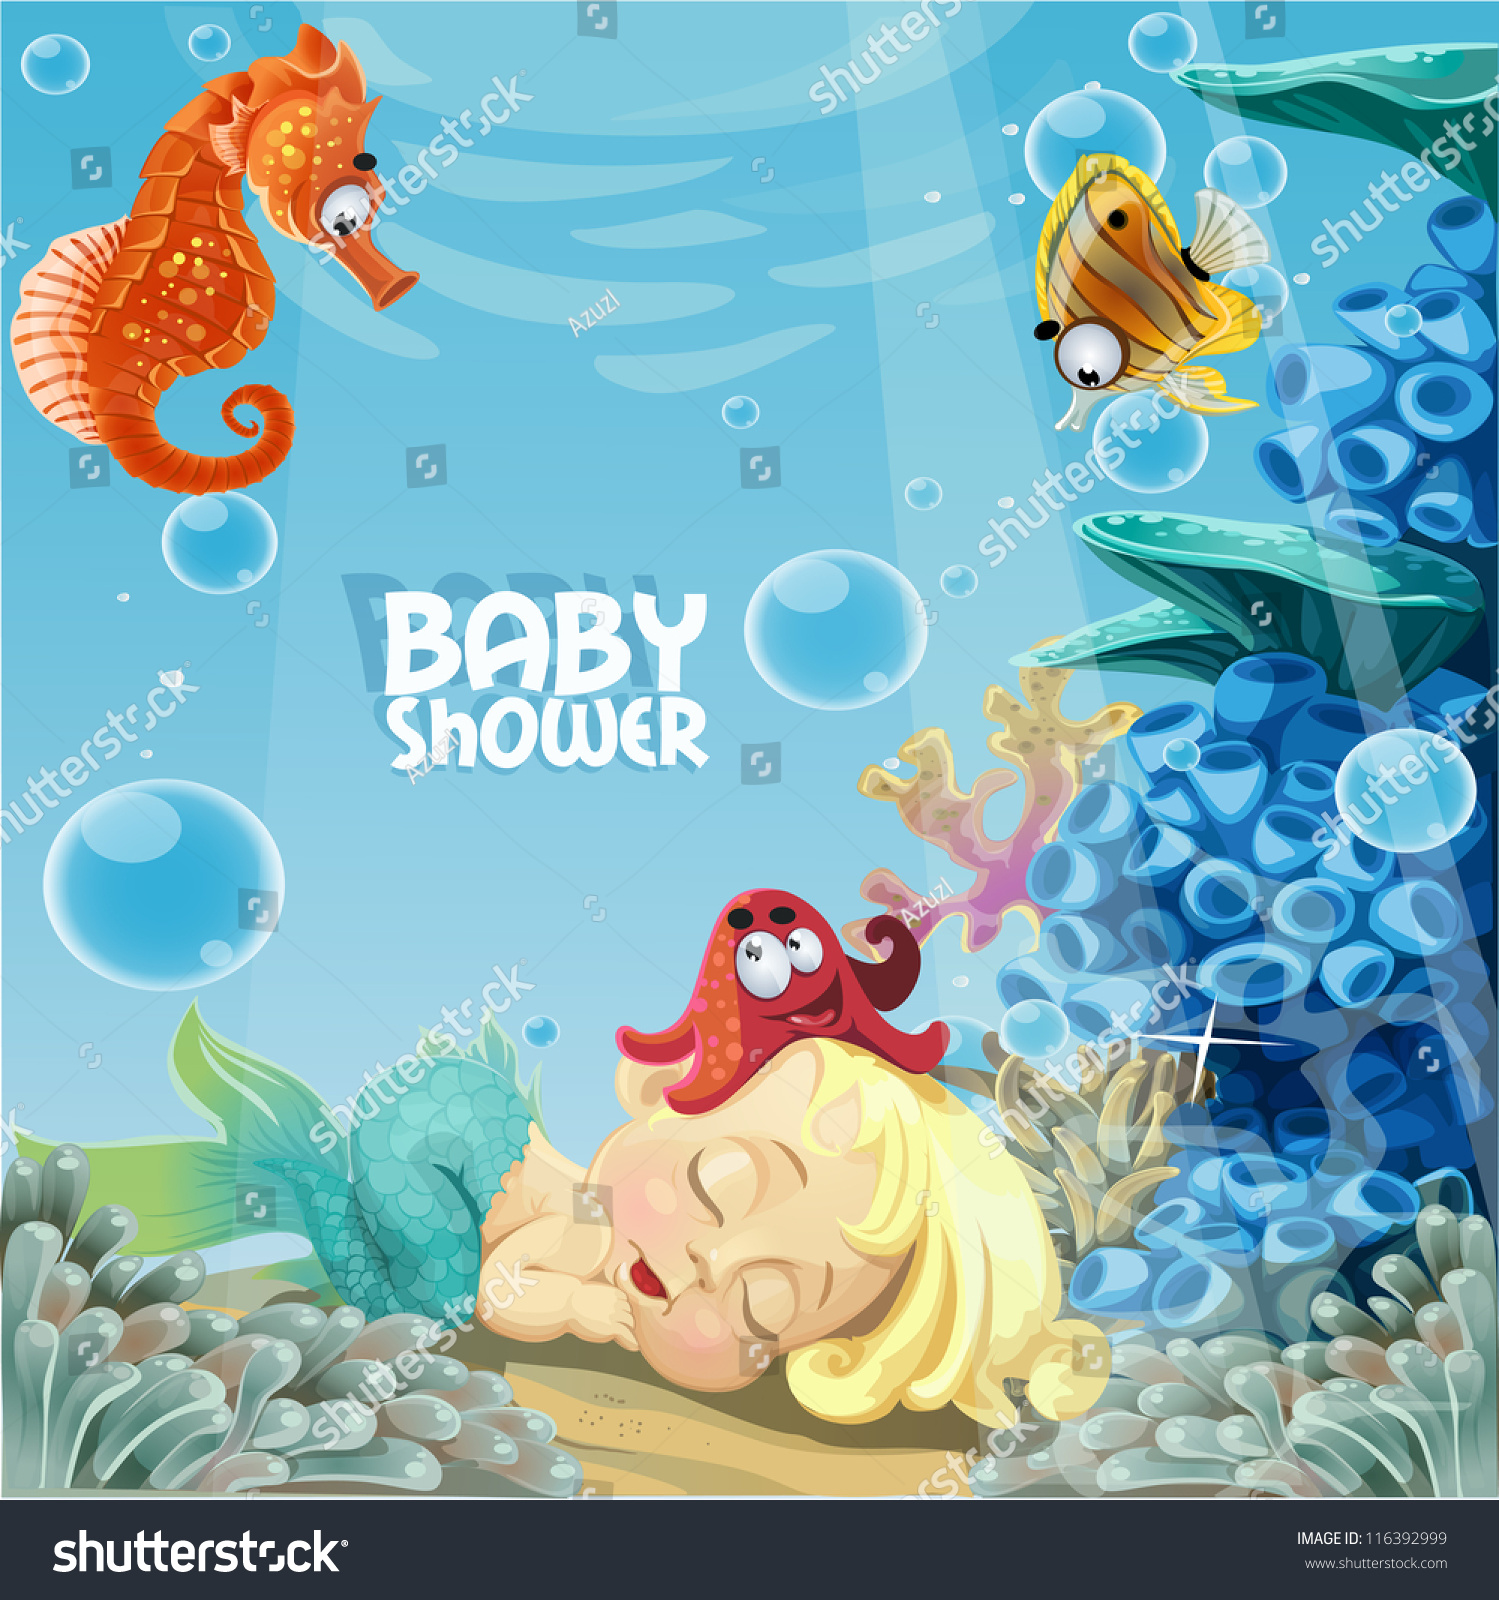 Baby Shower Sleeping Sweet Newborn Mermaid Stock Vector